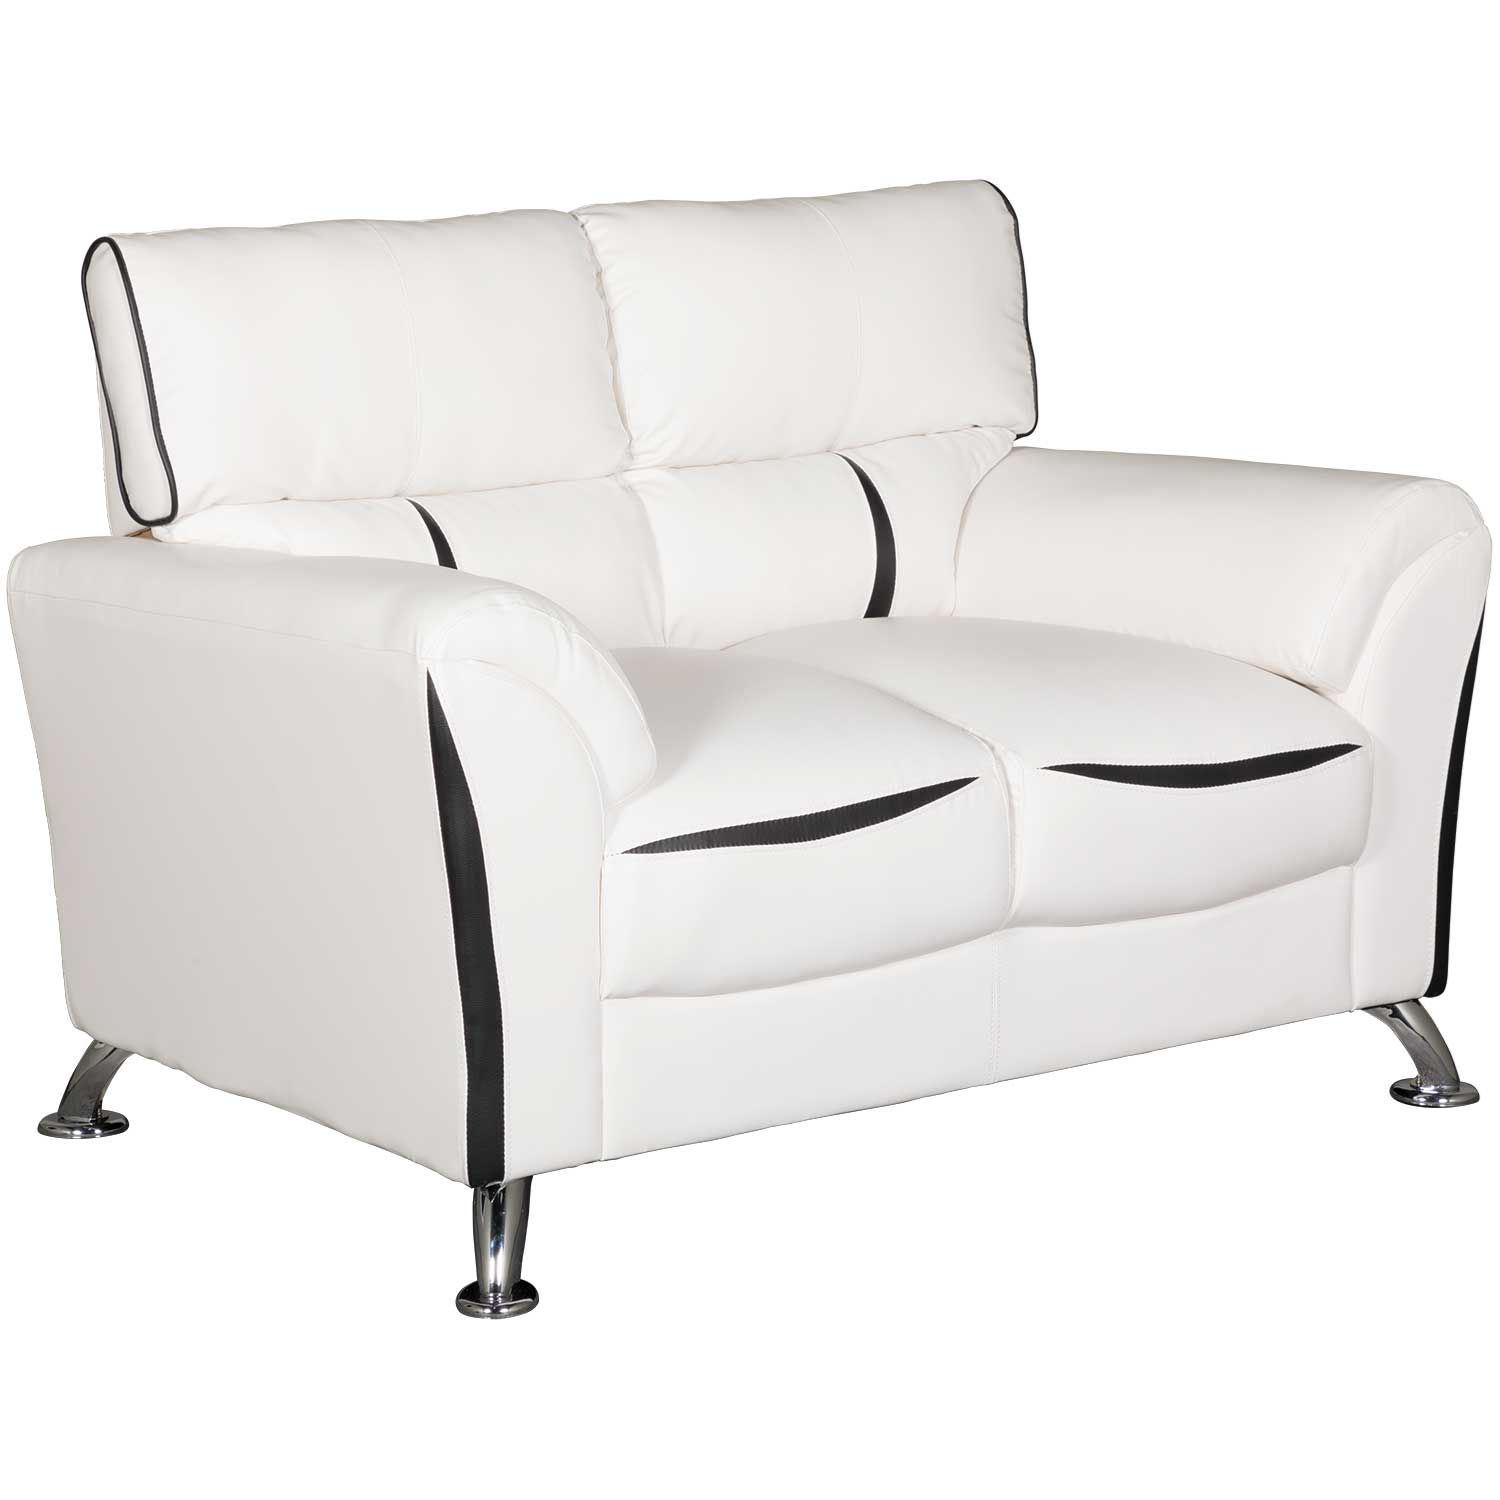 Terrific Tux White Loveseat Caraccident5 Cool Chair Designs And Ideas Caraccident5Info